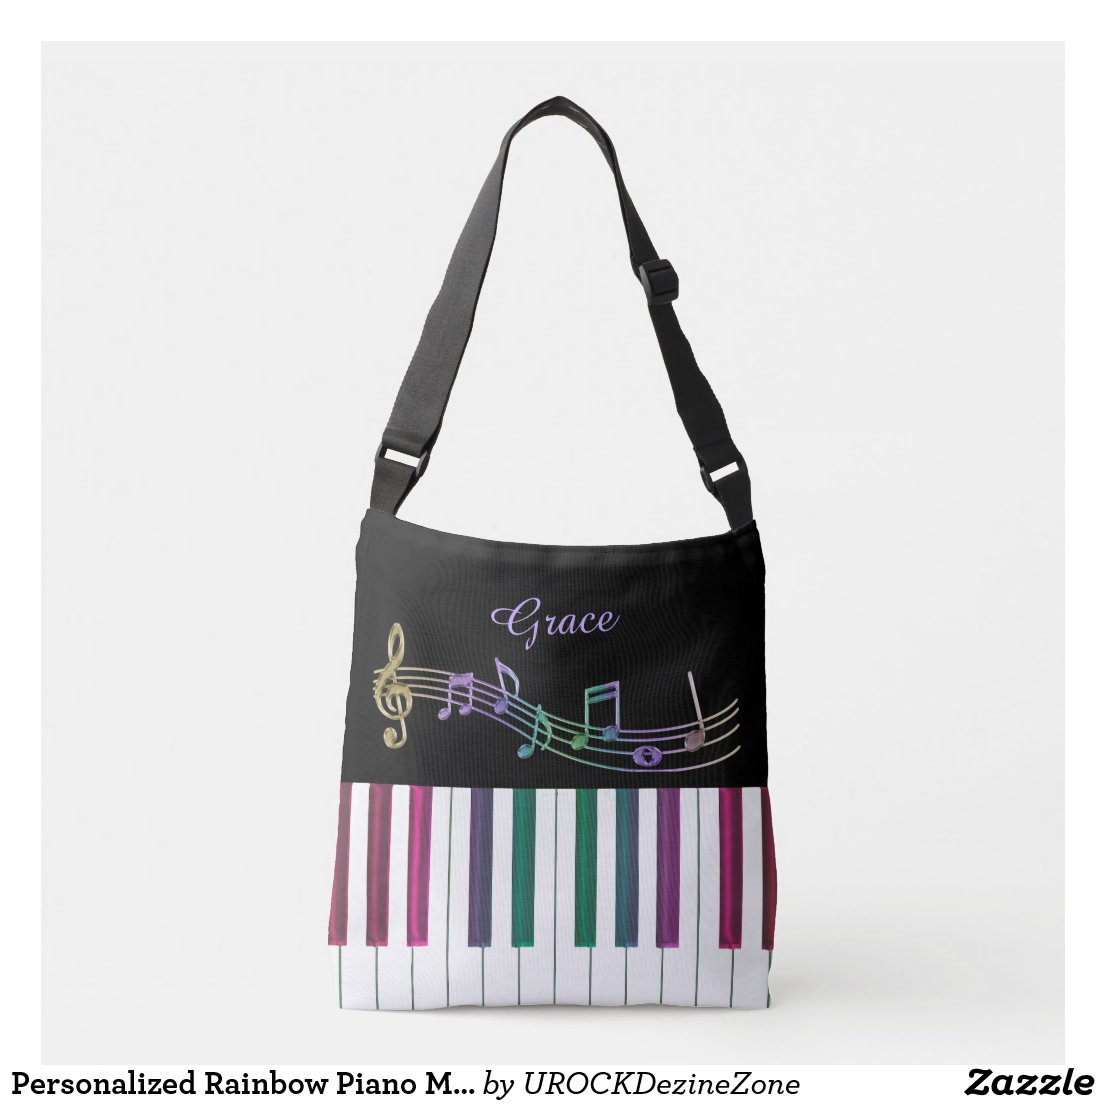 Personalized Rainbow Piano Music Tote Bag